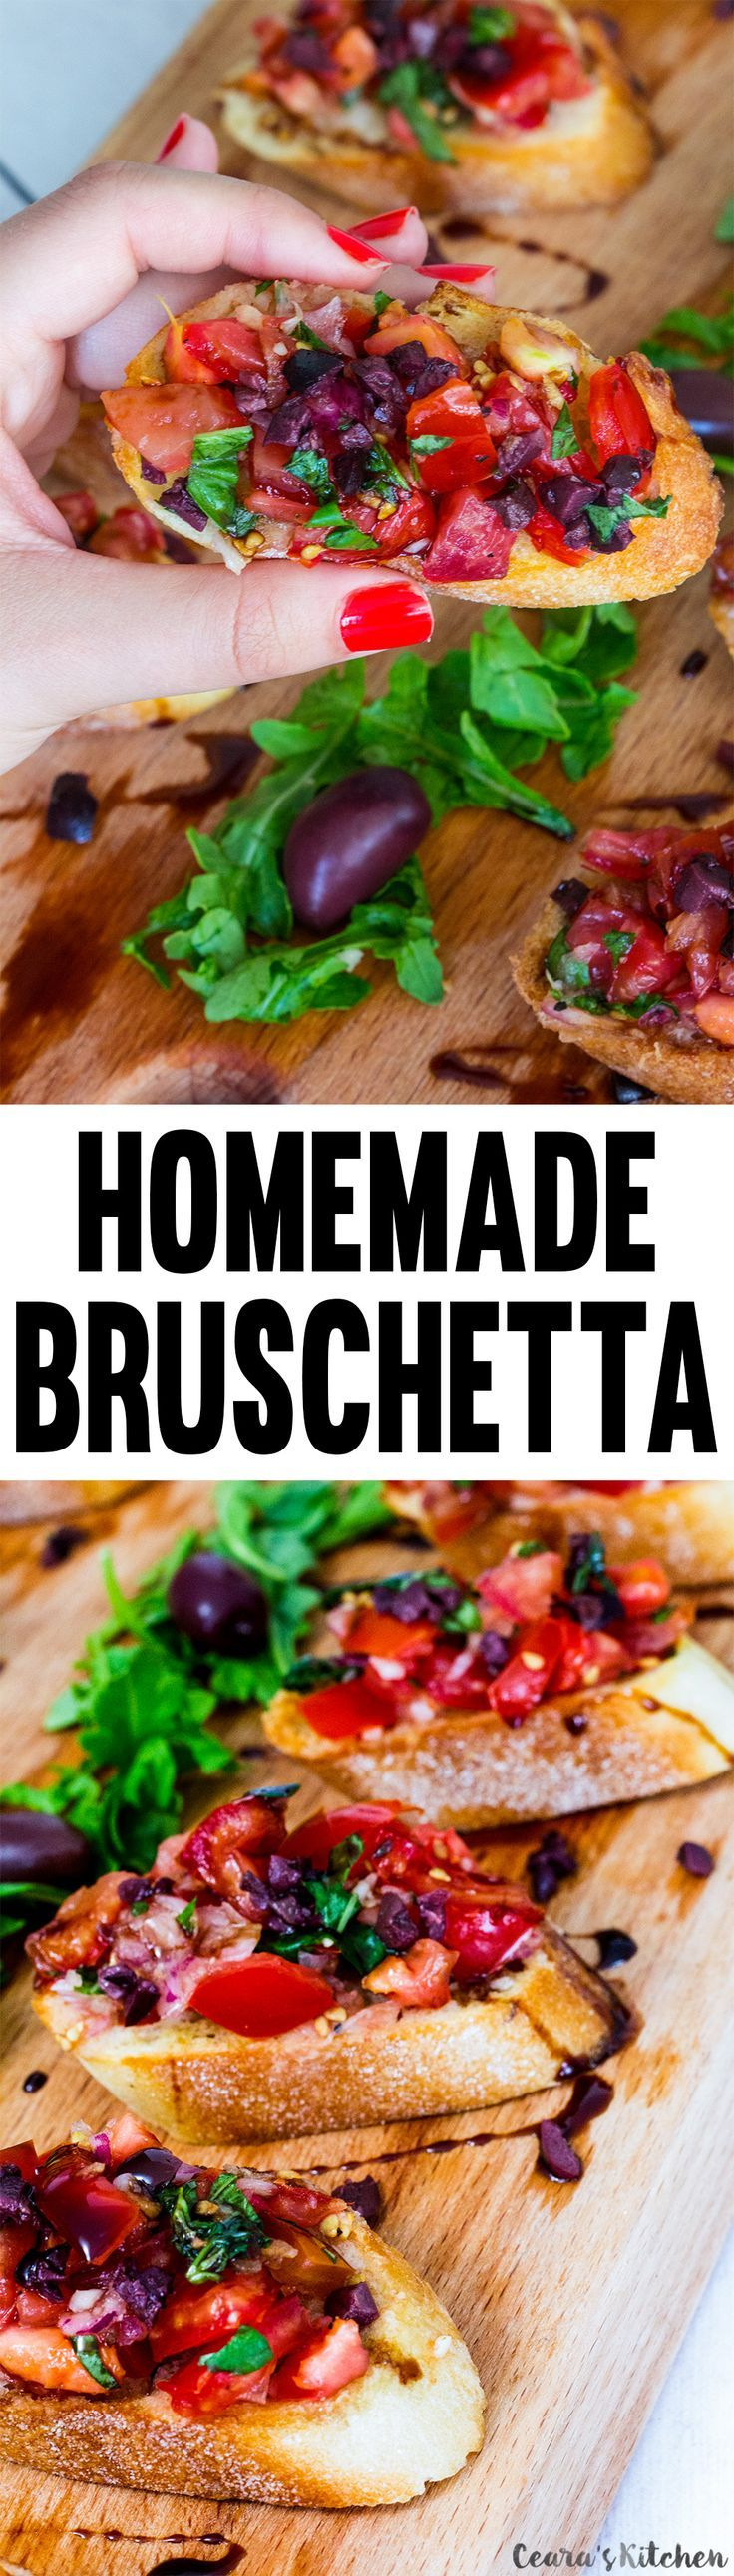 There are so many #Bruschetta recipes out there but this simple one is my favorite. Made with crunchy baguette, ripe tomatoes, fresh basil and lots of garlic! #Appetizer #Vegan